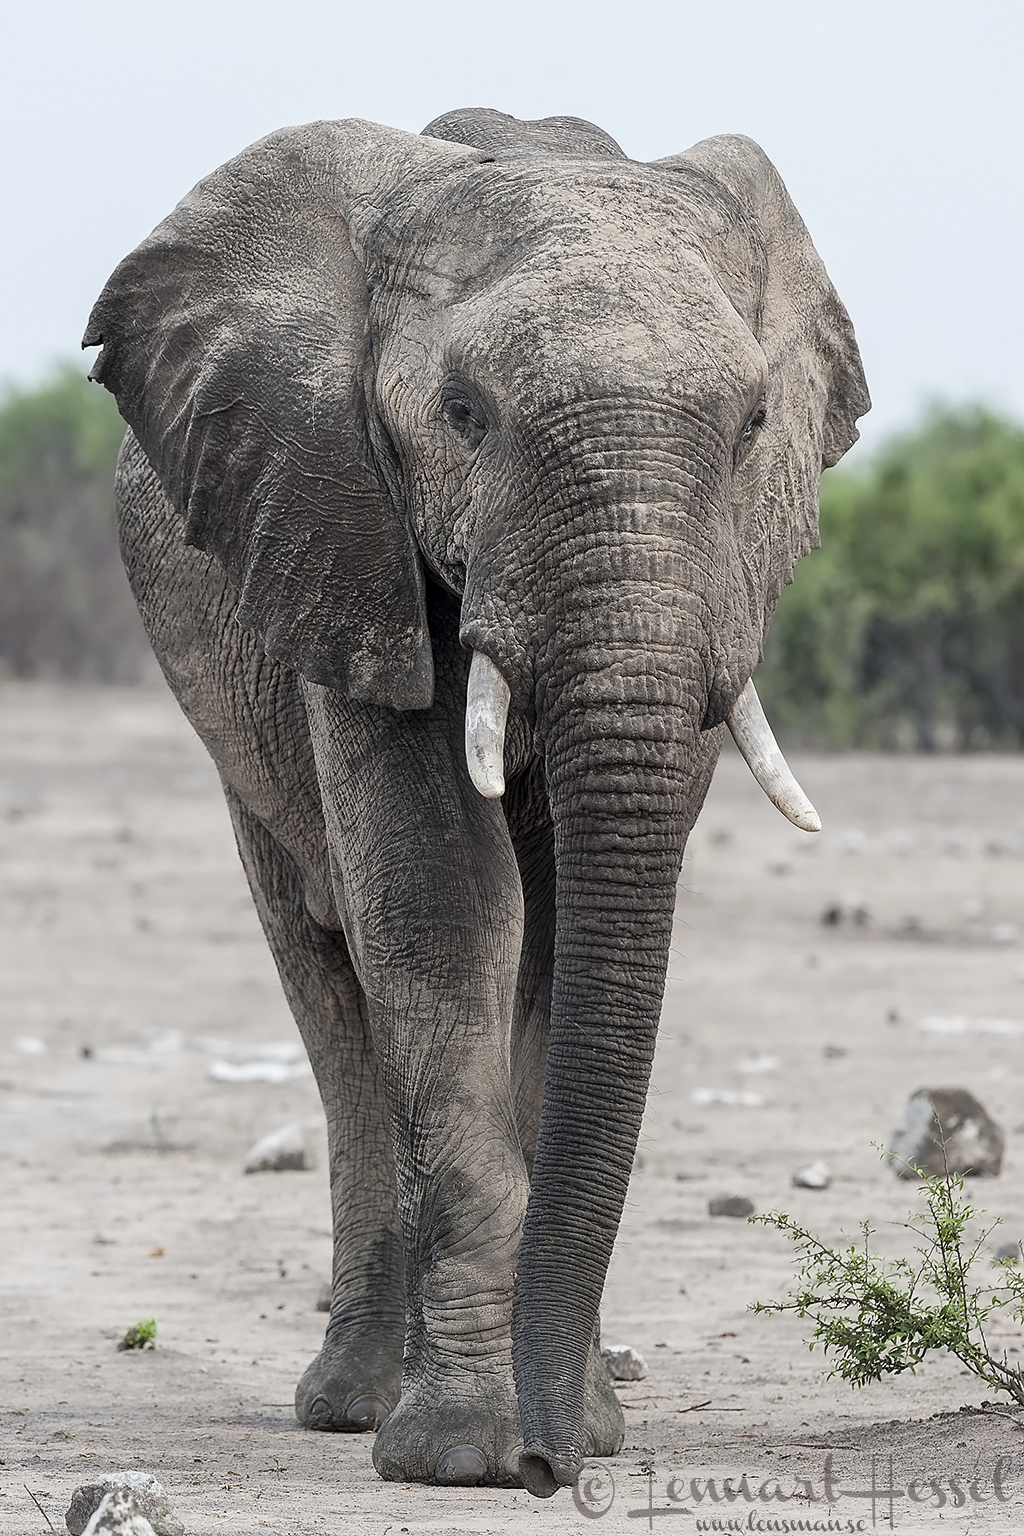 Elephant Bull in Chobe National Park, Botswana cover